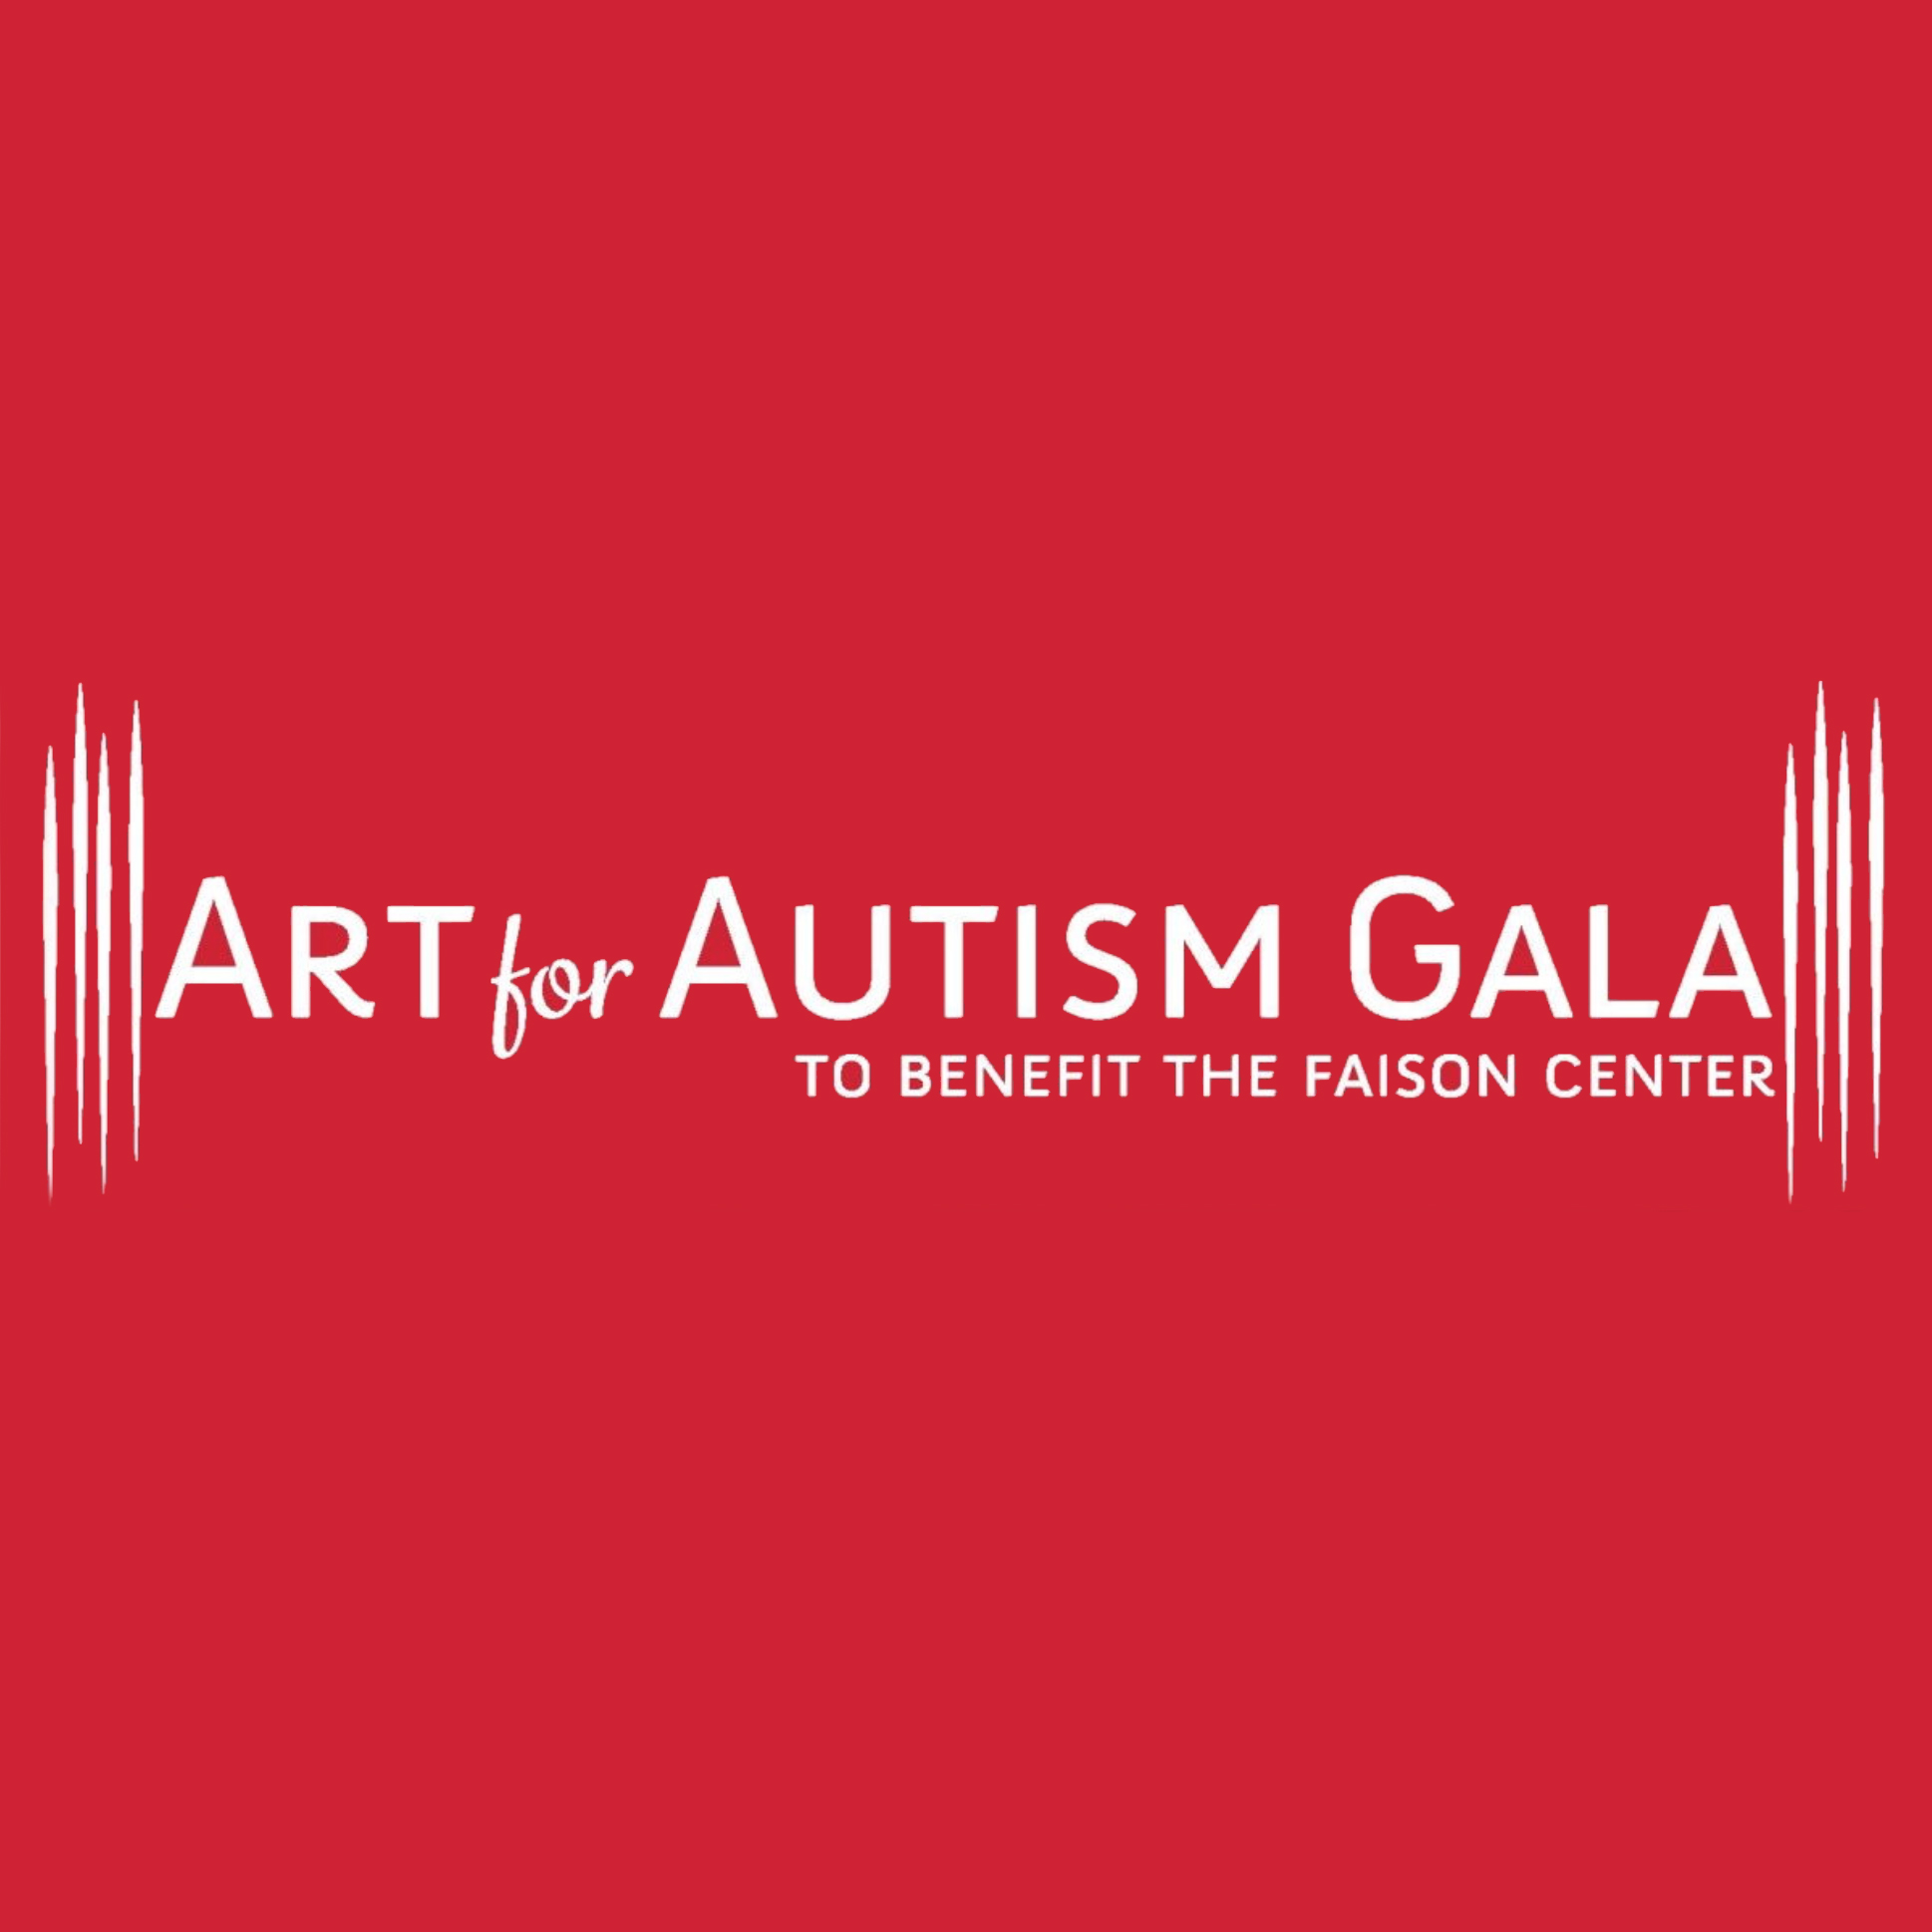 Art for Autism Gala